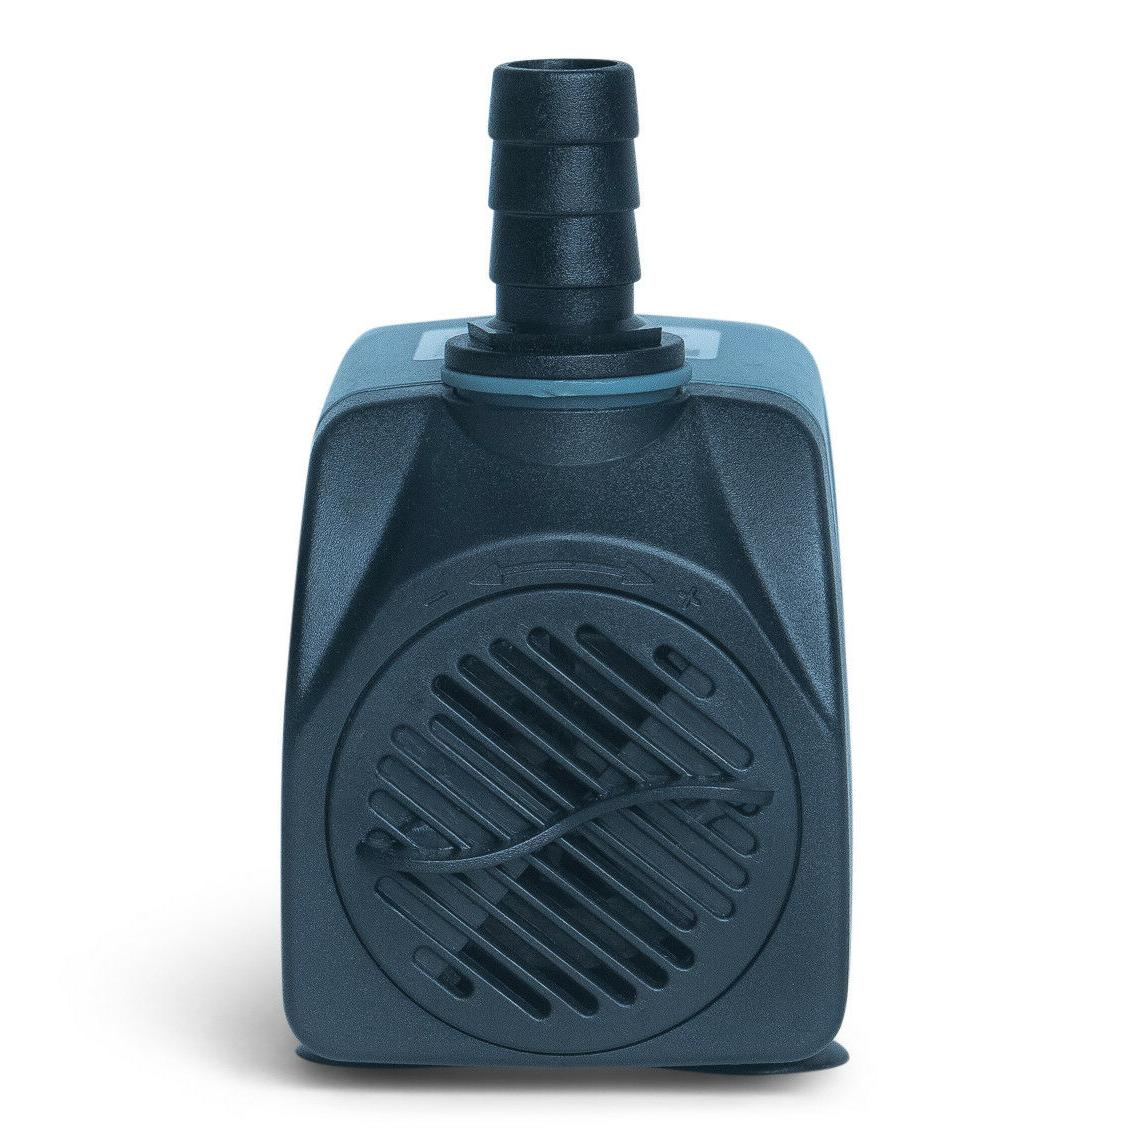 210 Submersible Pump Powerhead Hydroponic